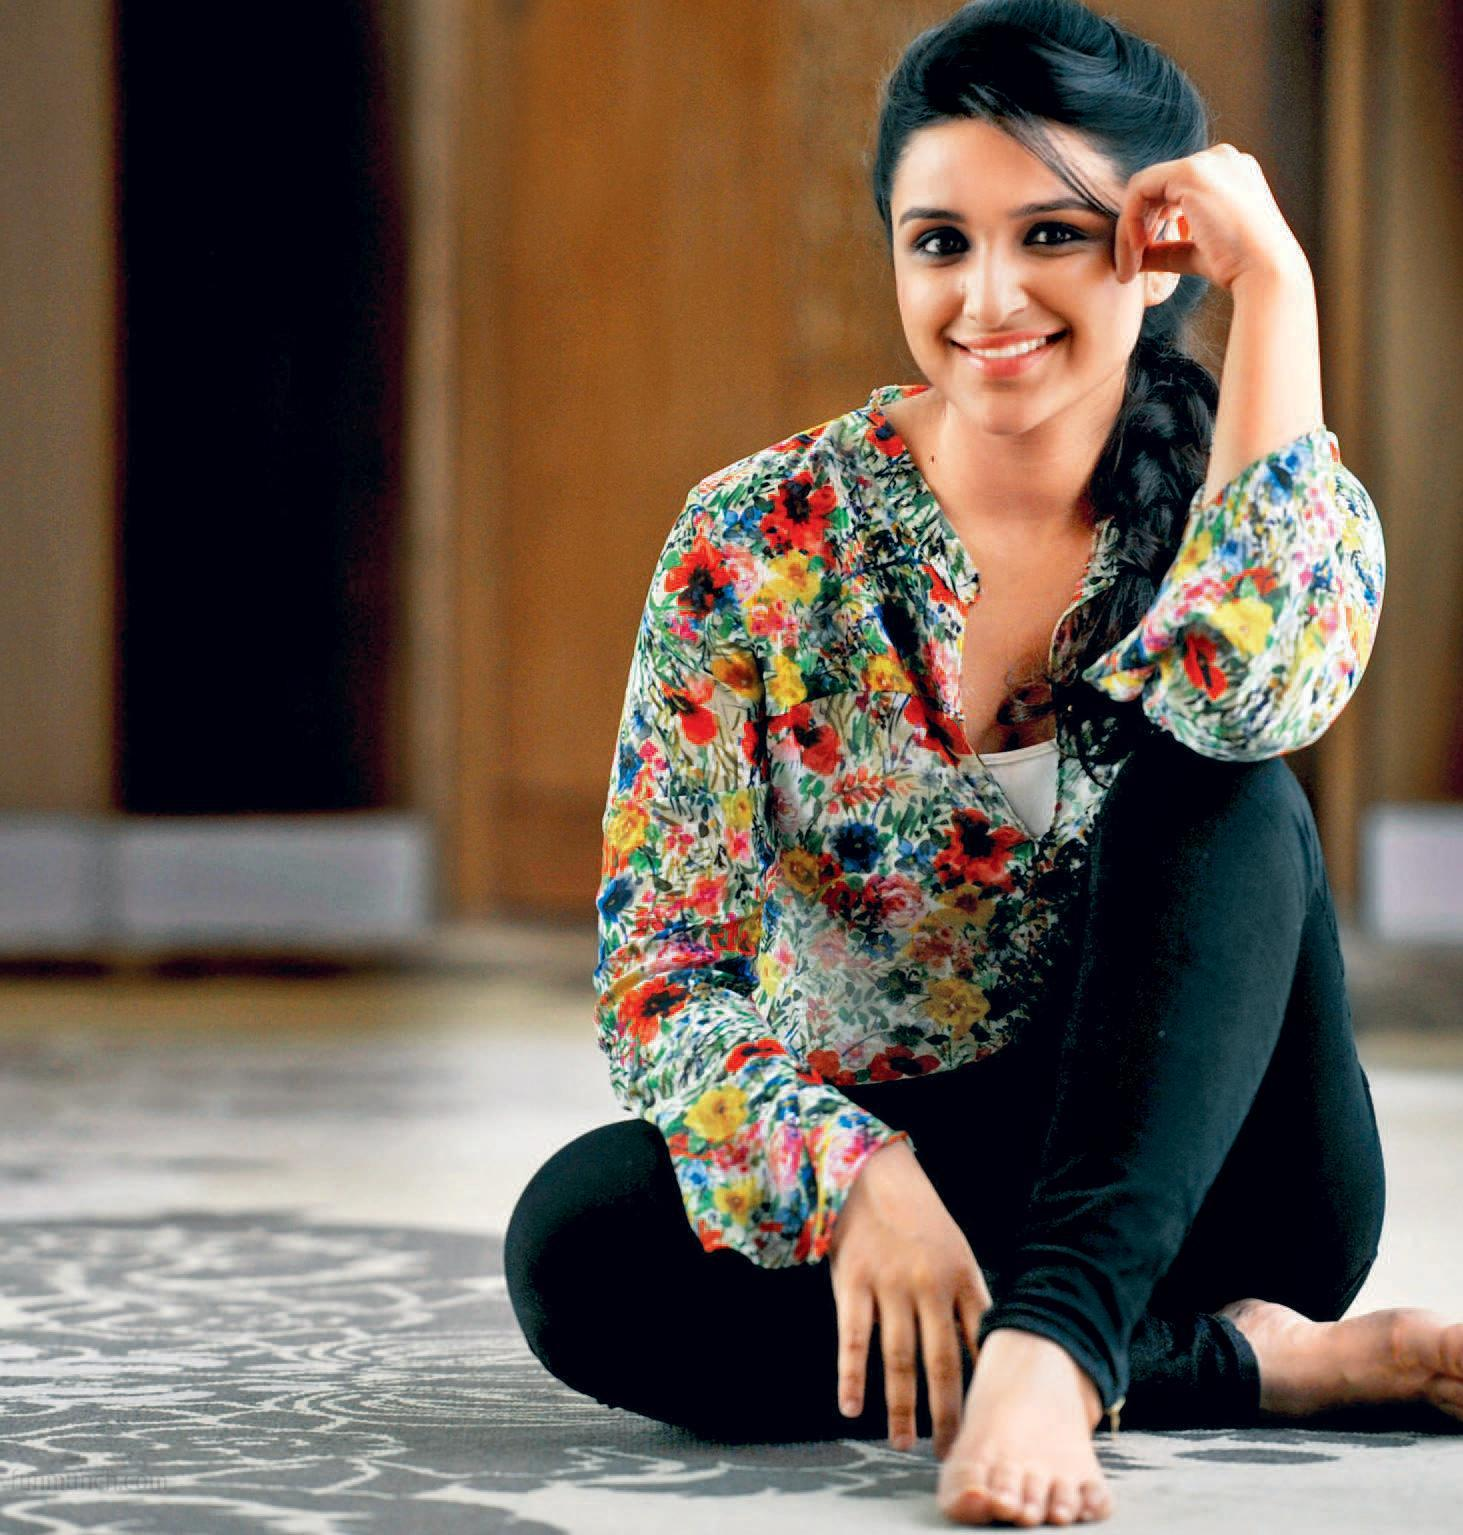 http://1.bp.blogspot.com/-M8gDfkQTN7E/UXp5M2y3m2I/AAAAAAAAGdk/NN1P0qKutPQ/s1600/parineeti+chopra+hd+wallpapers+++latest+new+collection+(3).jpeg